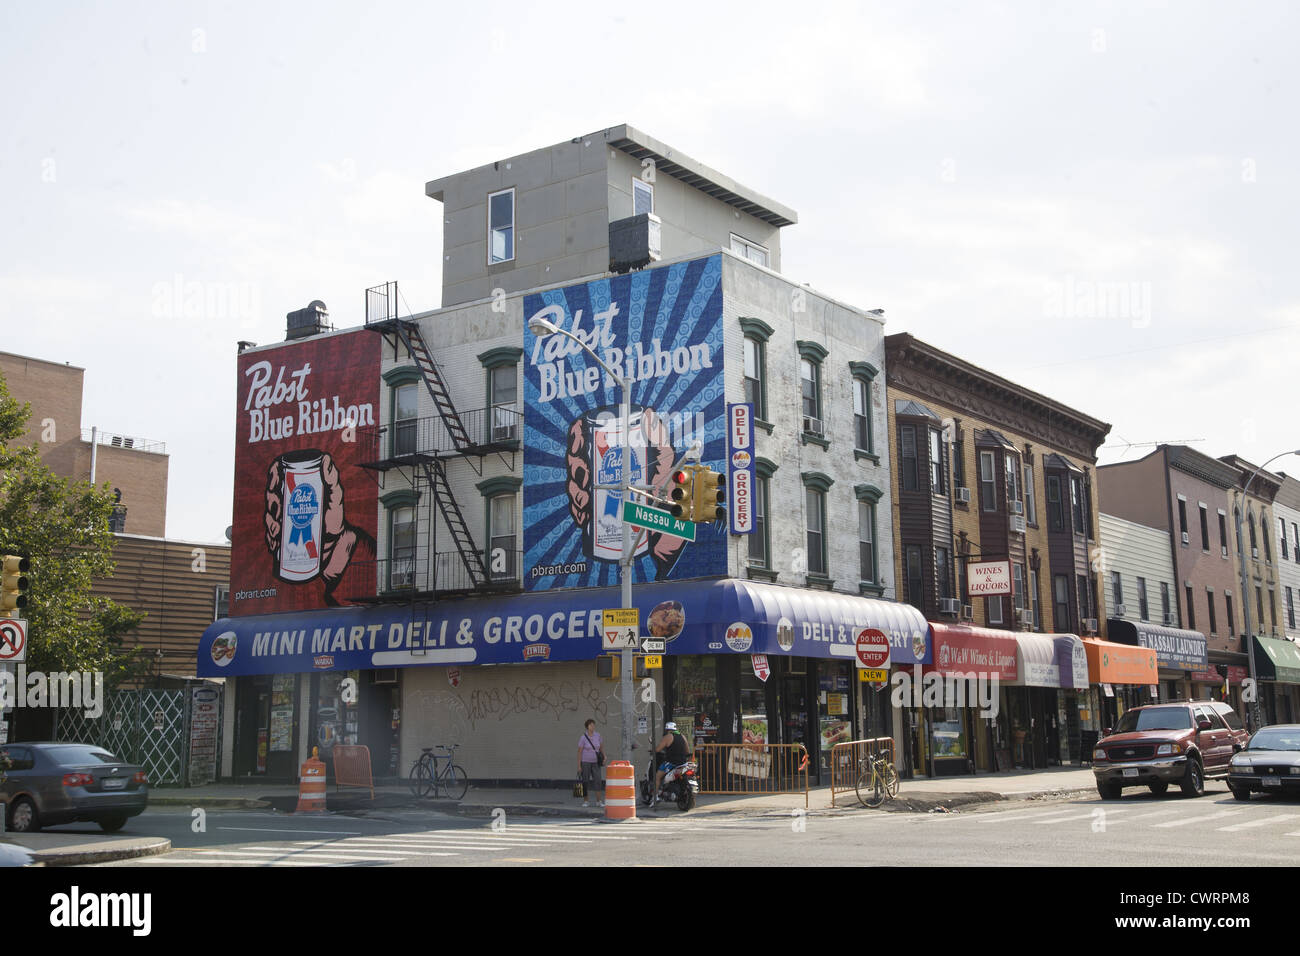 Pabst Blue Ribbon Beer ads along Nassau Avenue in Greenpoint, Brooklyn, NY. - Stock Image